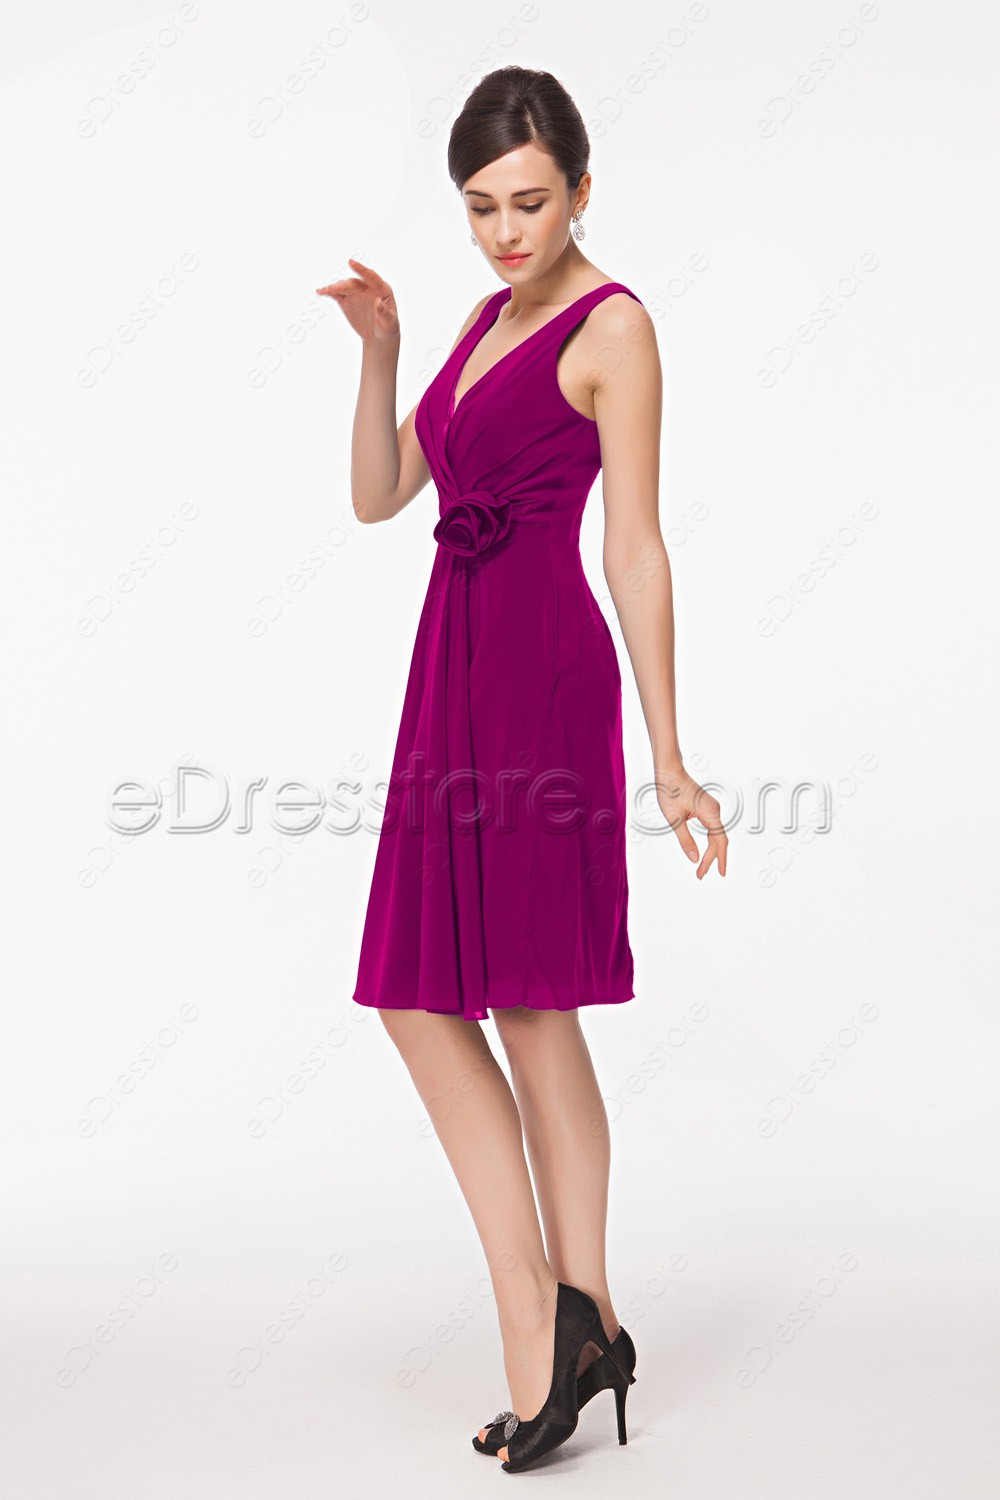 V neck magenta knee length bridesmaid dresses for Knee length fitted wedding dresses